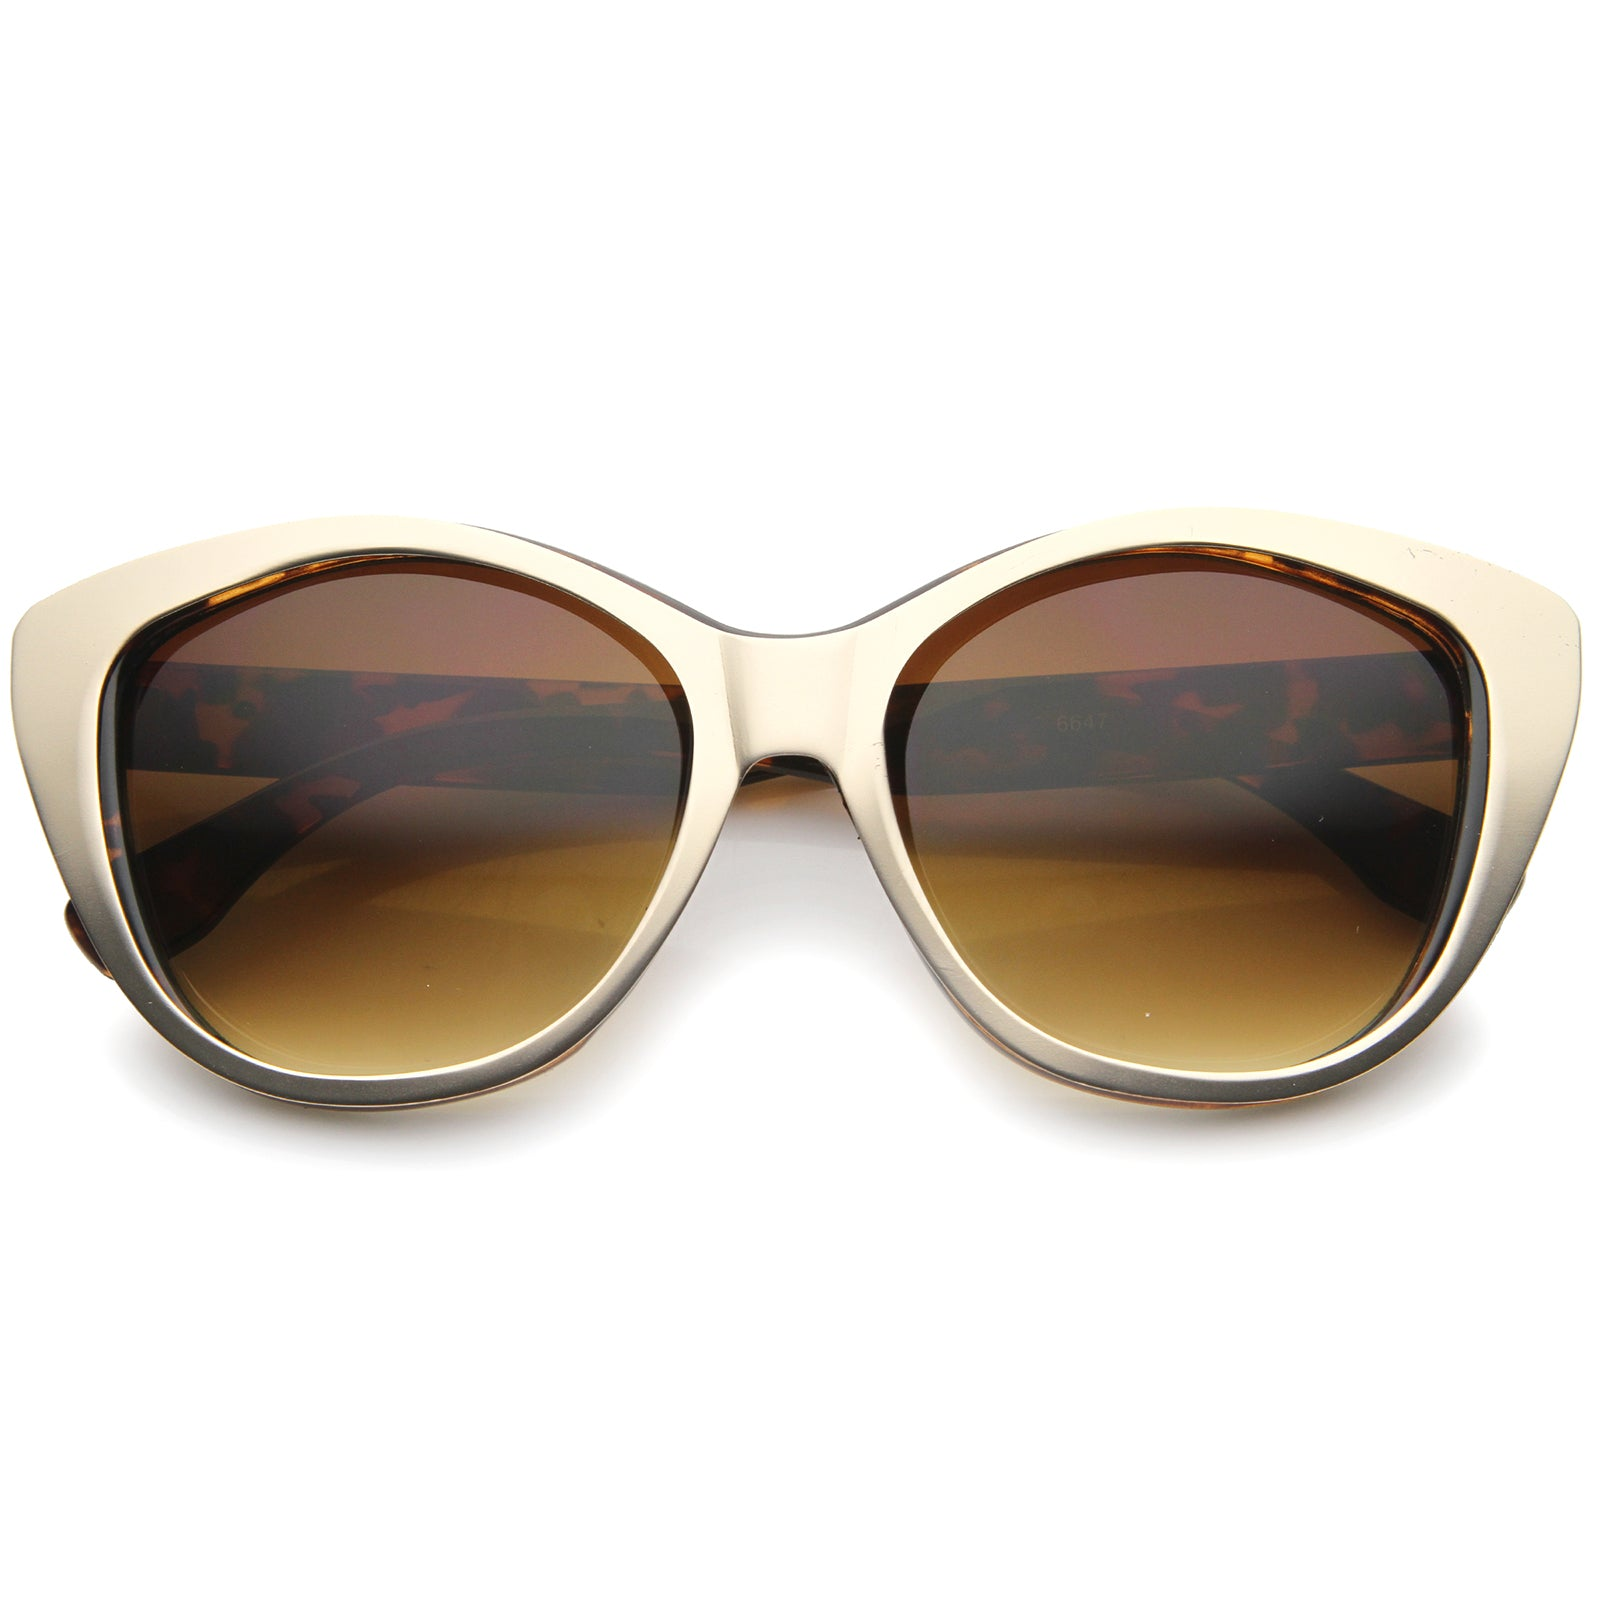 Women's High Fashion Two-Toned Tinted Lens Oversize Cat Eye Sunglasses 55mm - sunglass.la - 13